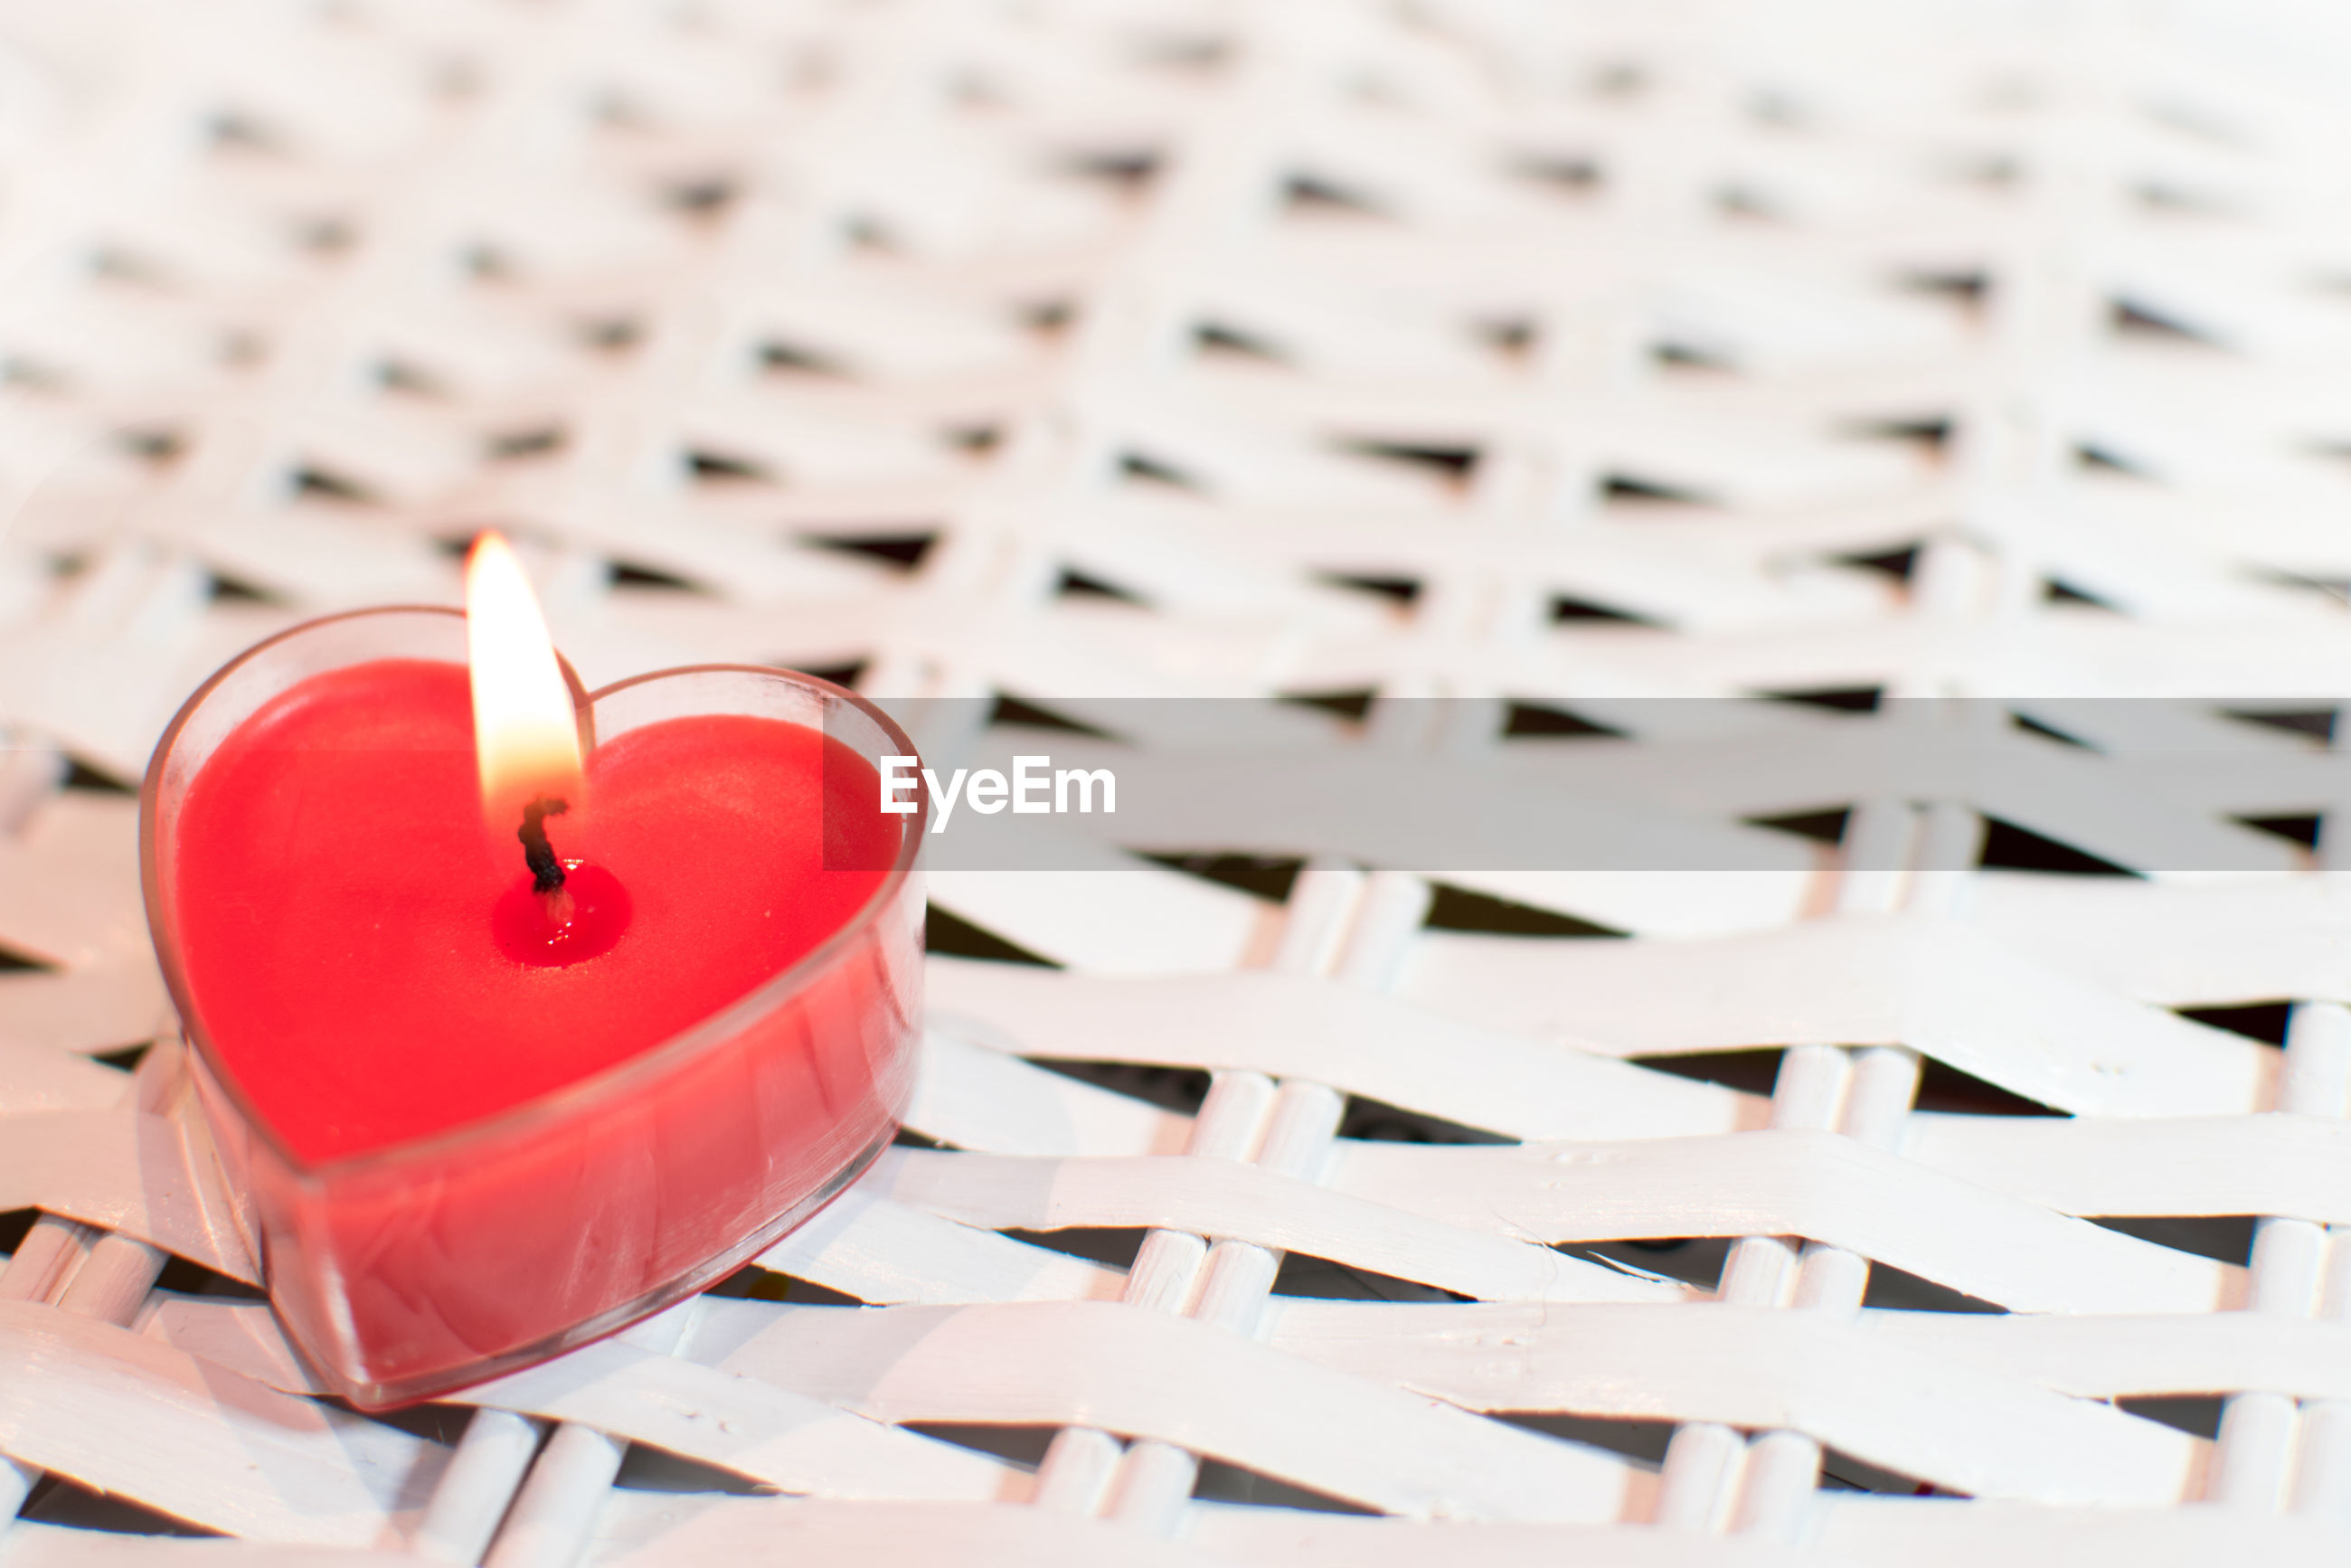 High angle view of illuminated heart shape candle on table